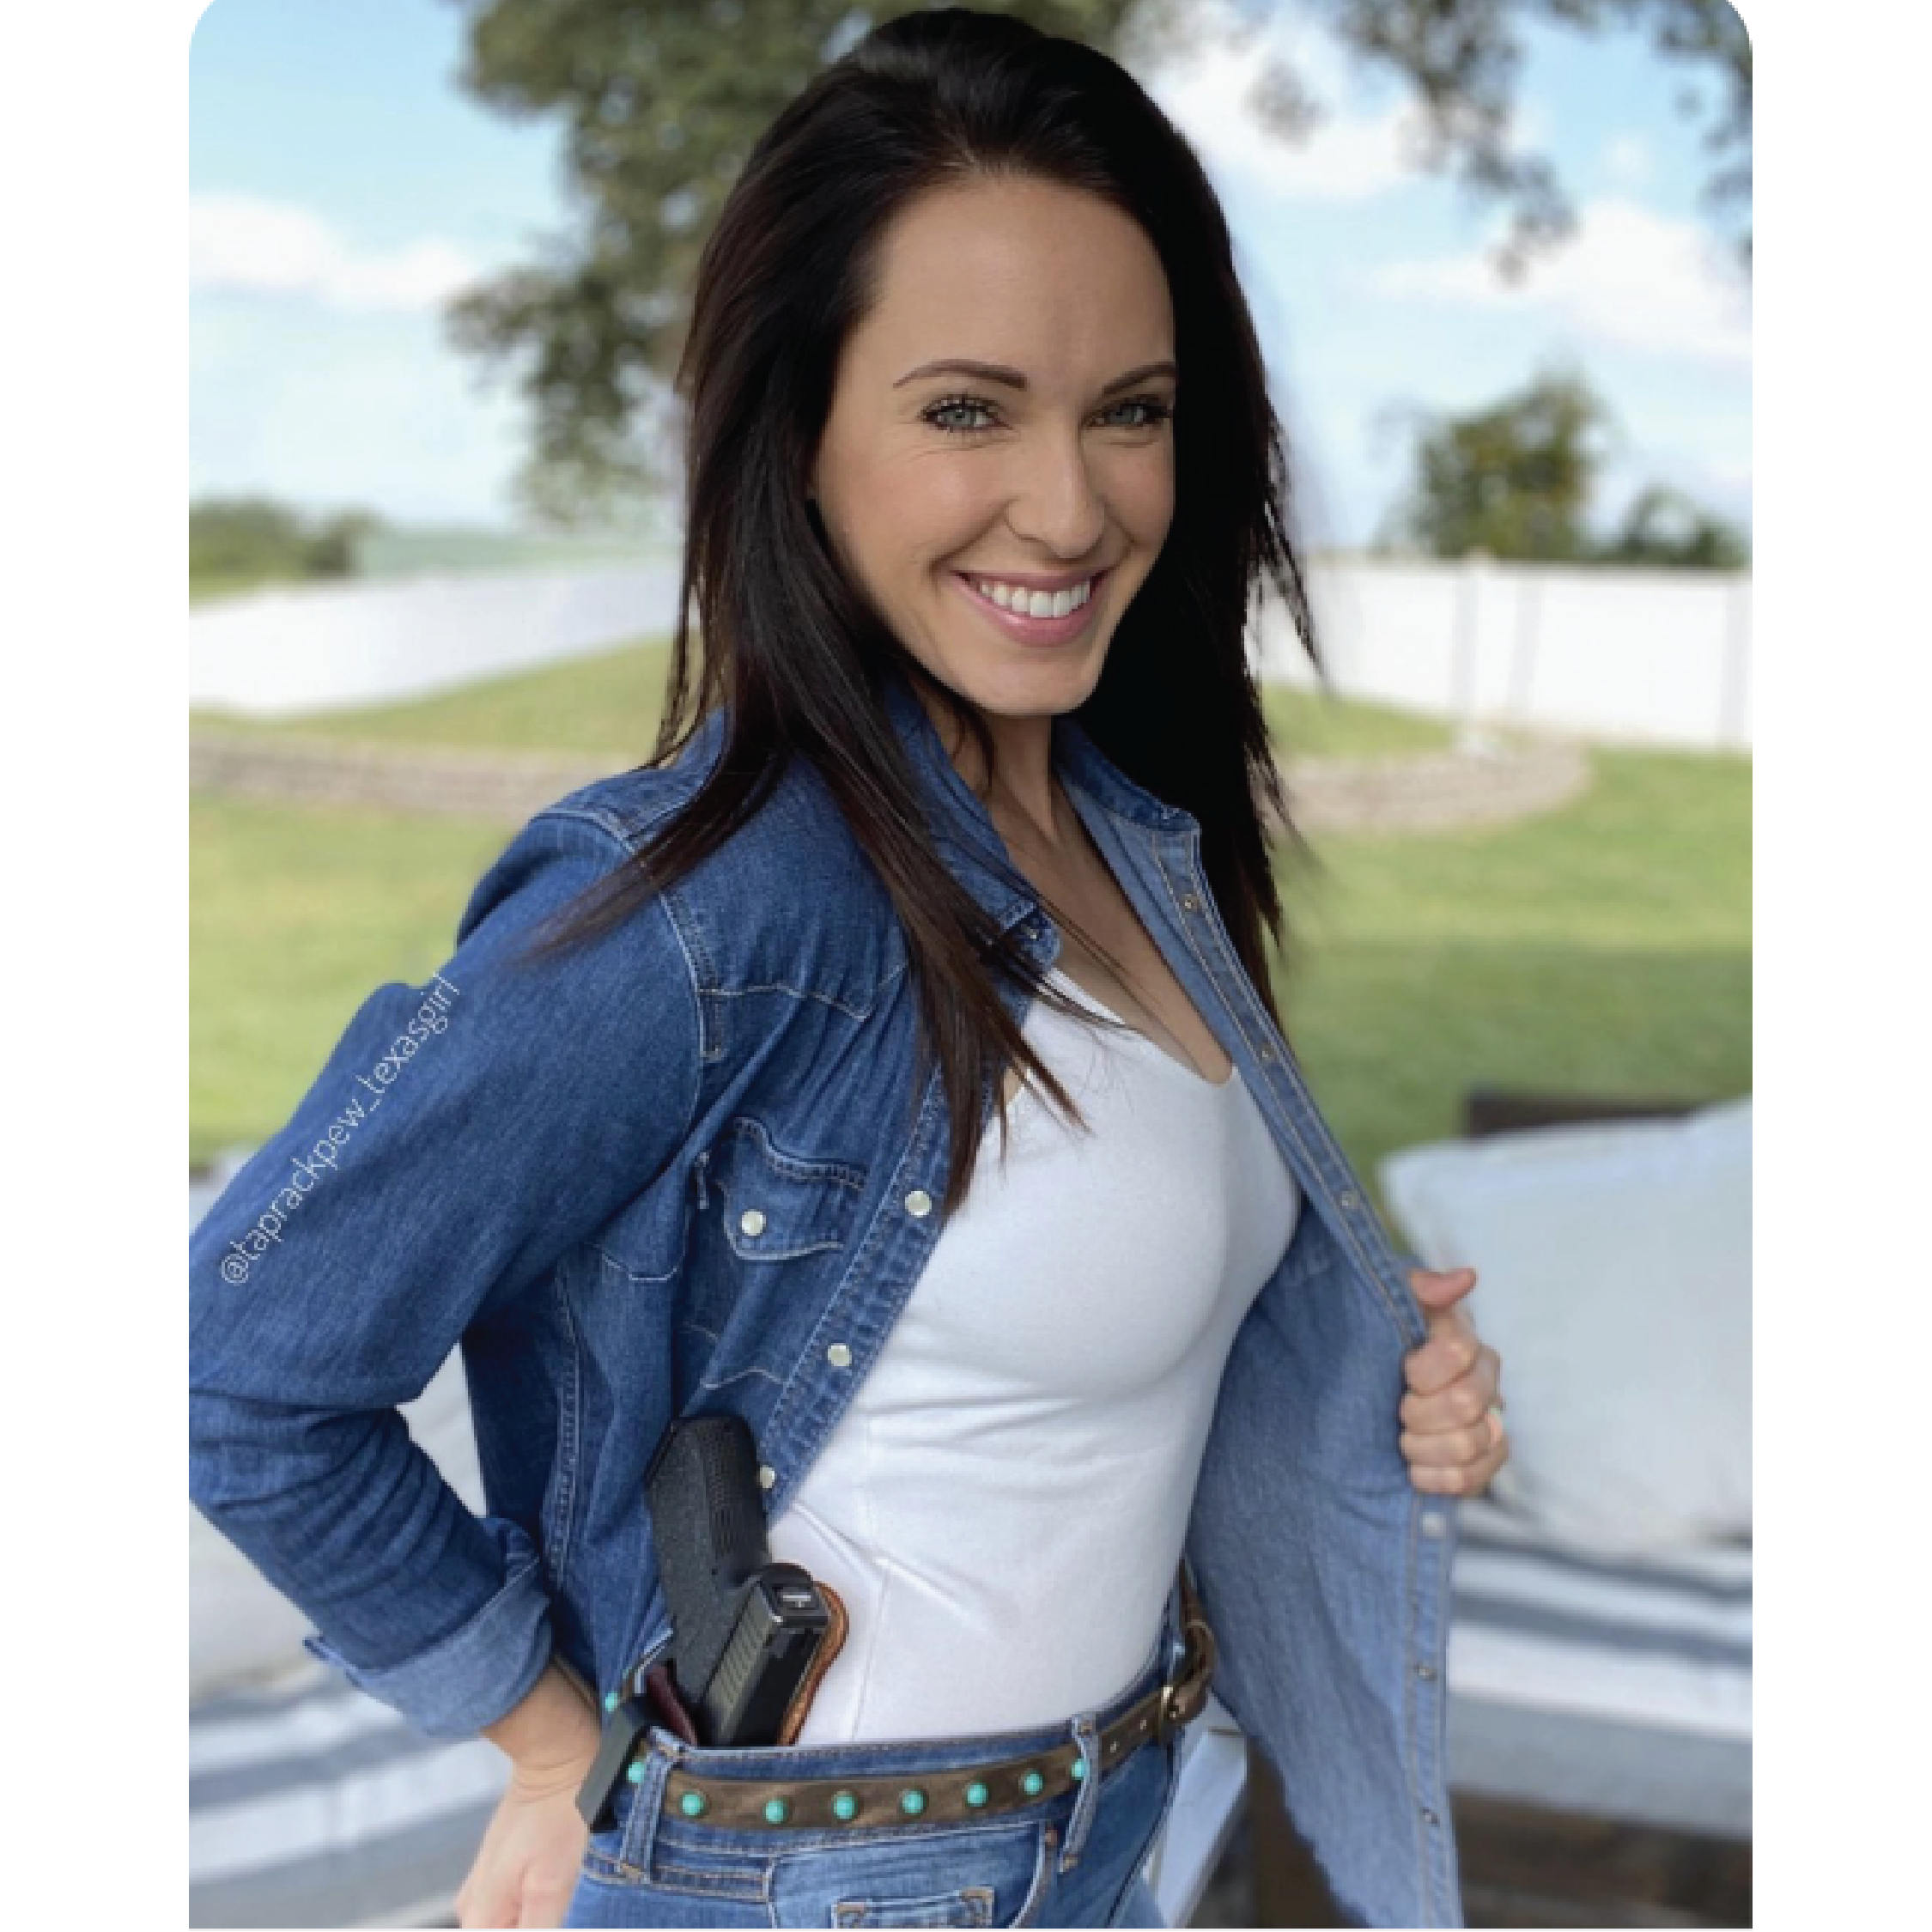 Top 5 CCW Positions for Practicality & Comfort